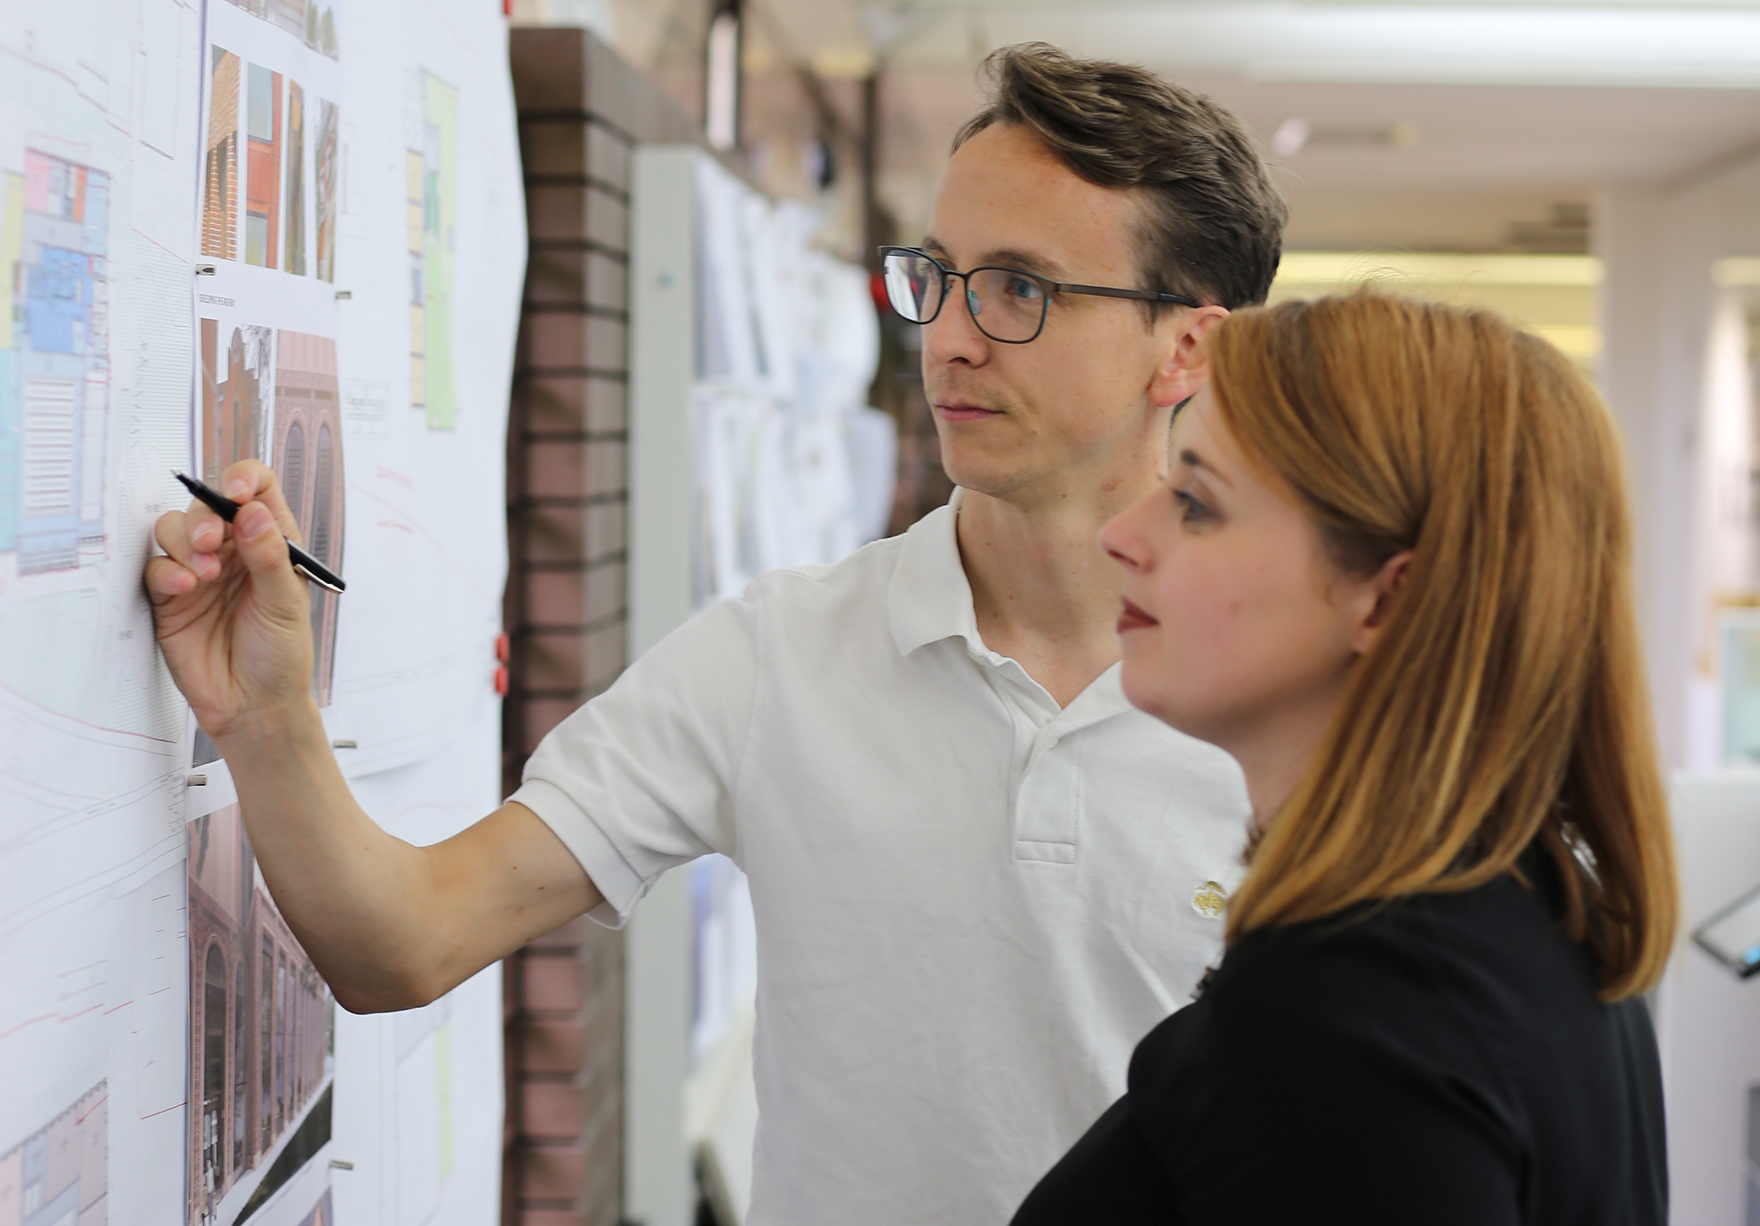 Laura Mcclorey And Nick Heyward Looking Reviewing Architectural Designs On Crit Wall Lh